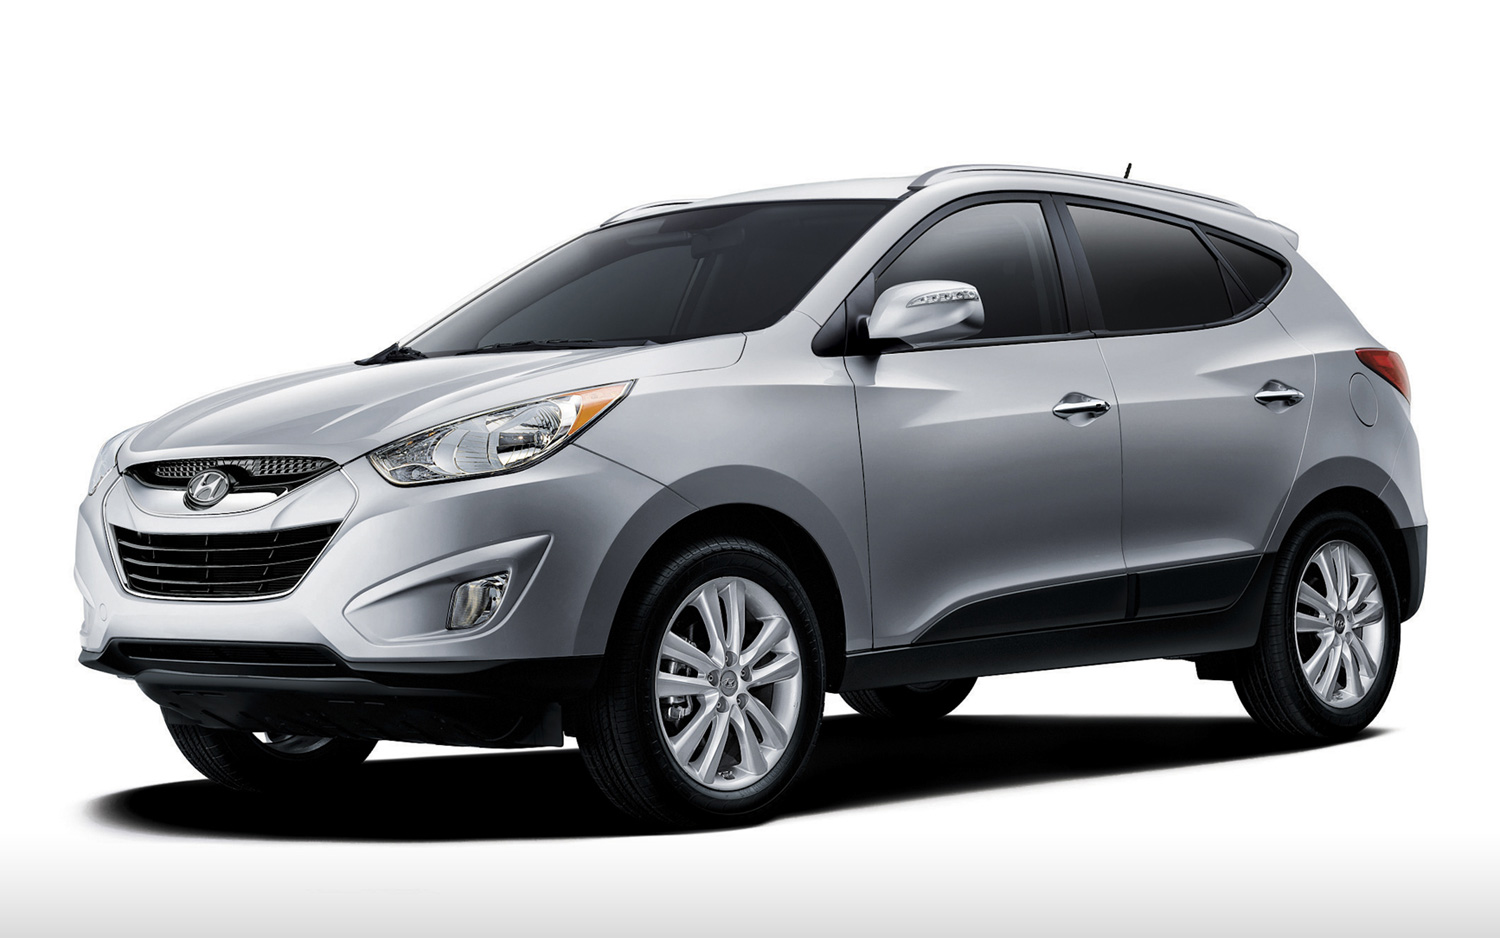 2014 hyundai tucson new cars reviews. Black Bedroom Furniture Sets. Home Design Ideas